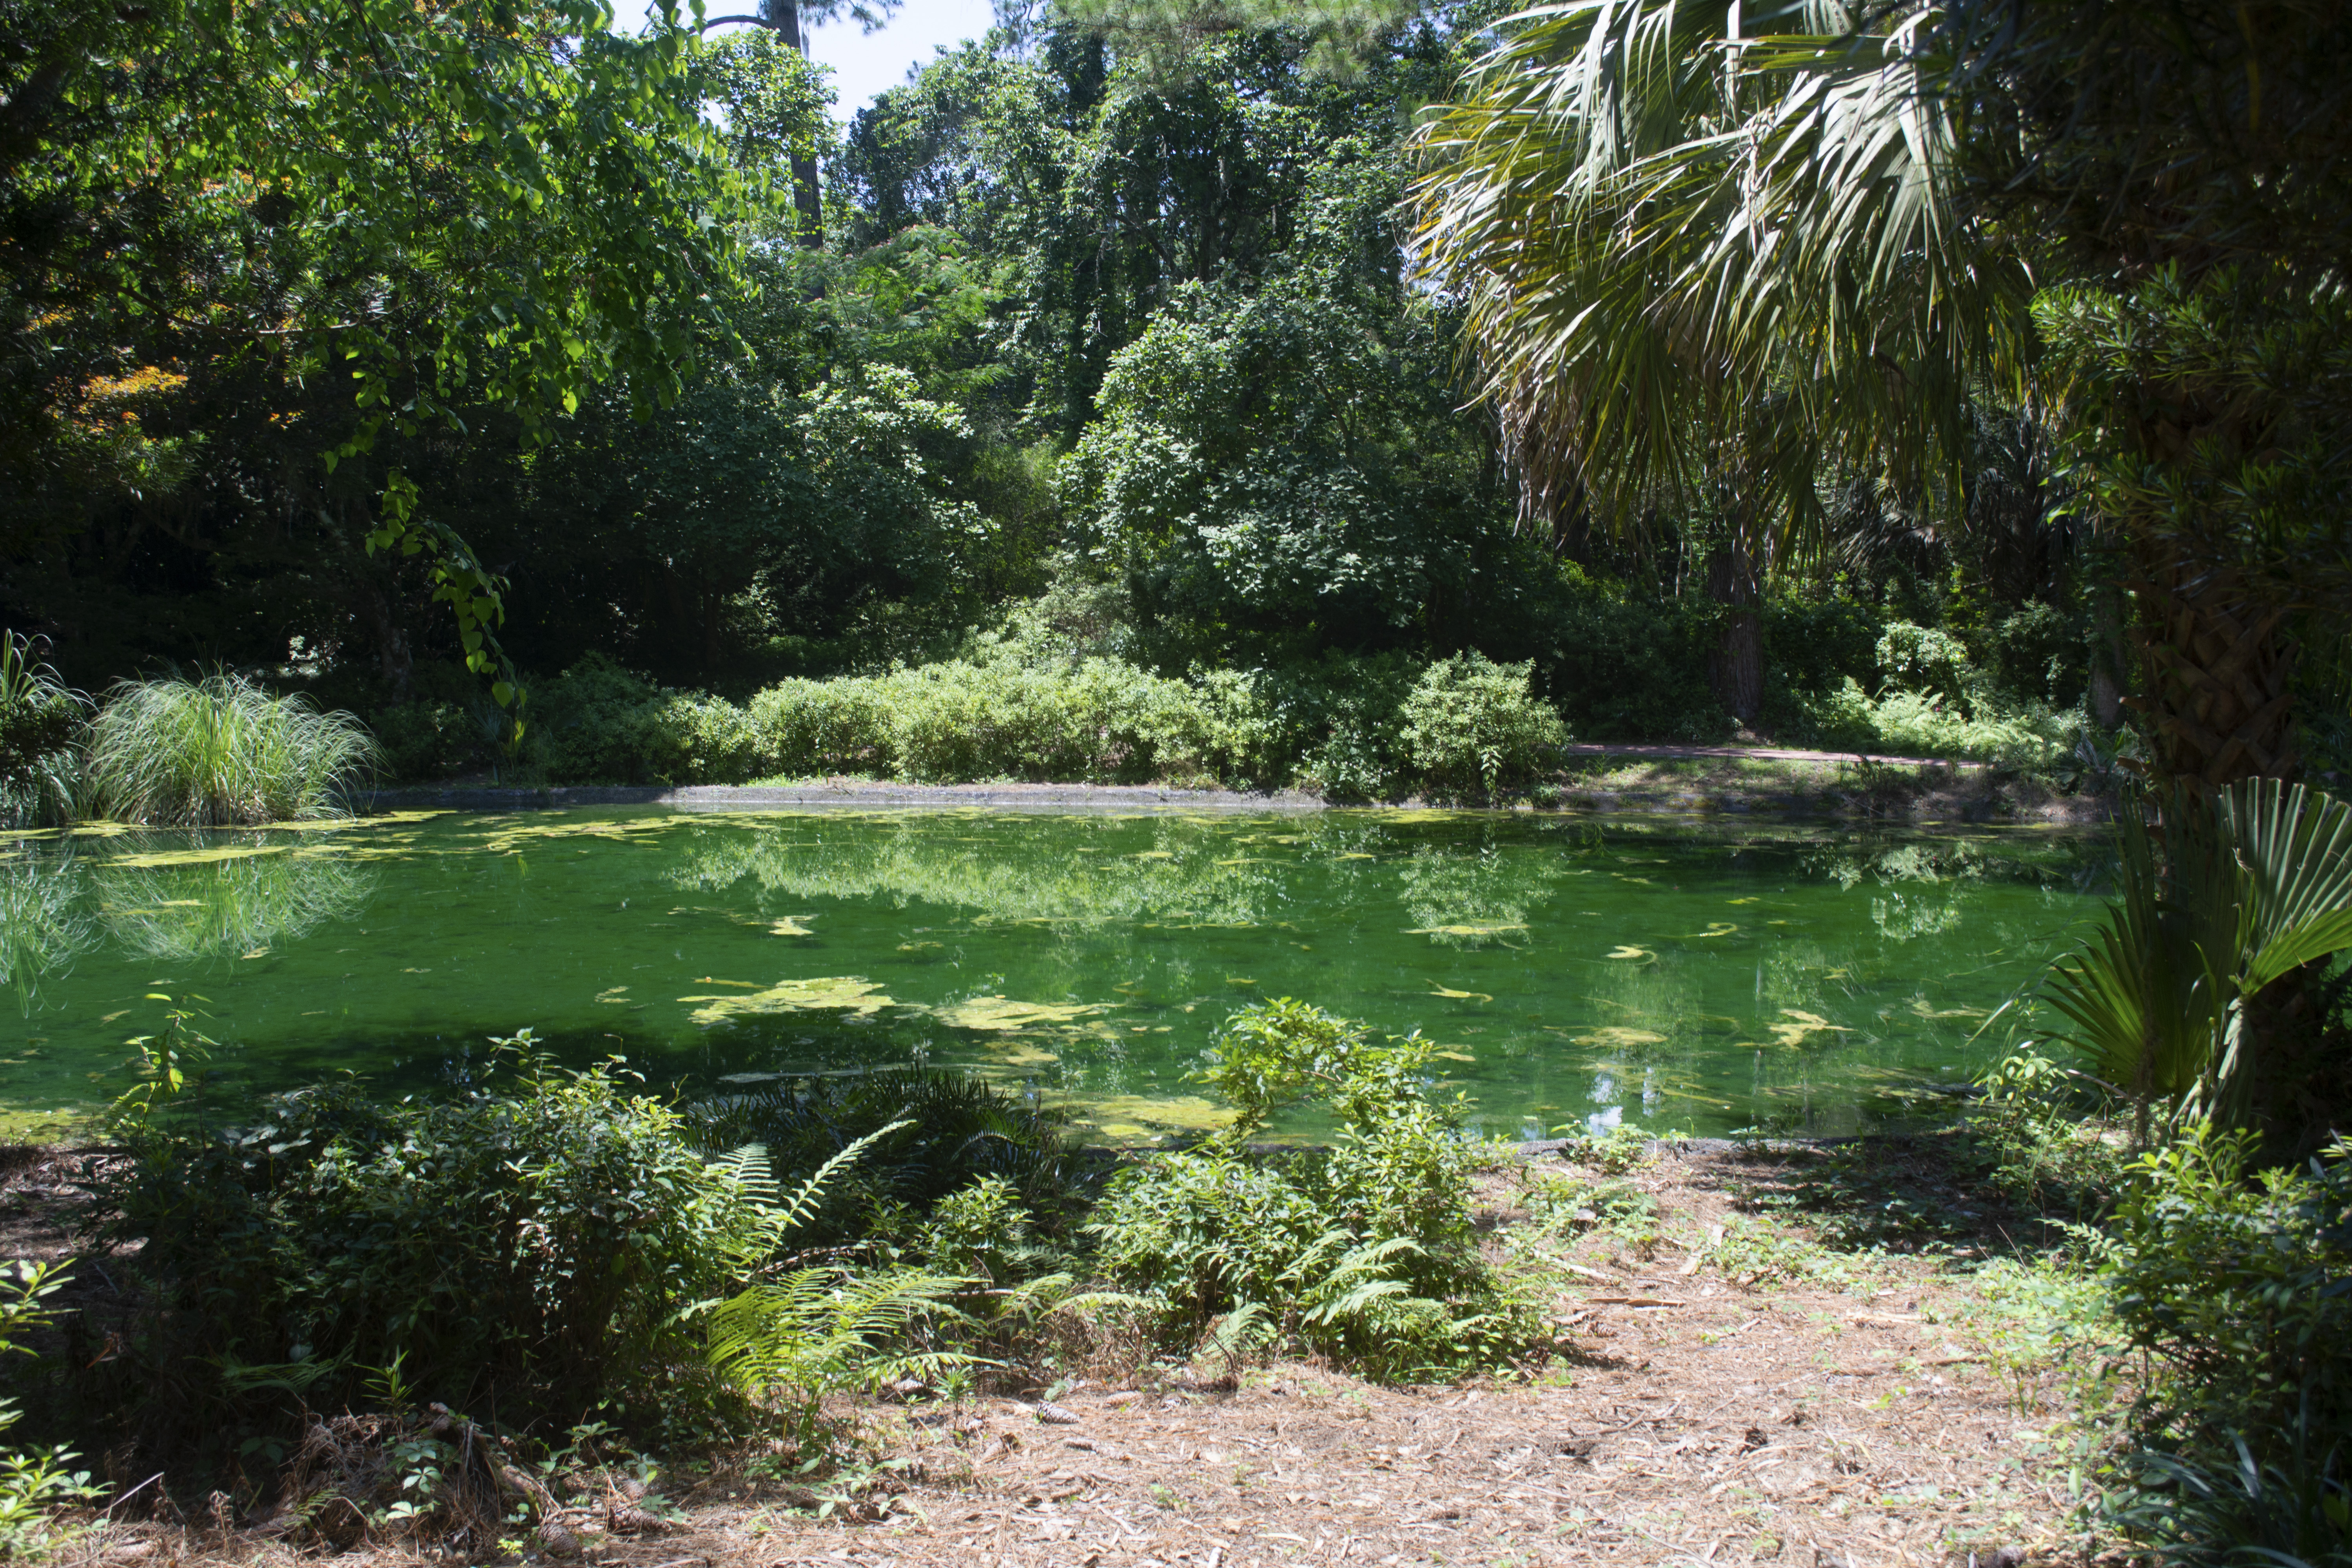 Pond at Alfred B. McCabe Garden State Park in Tallahassee, FL